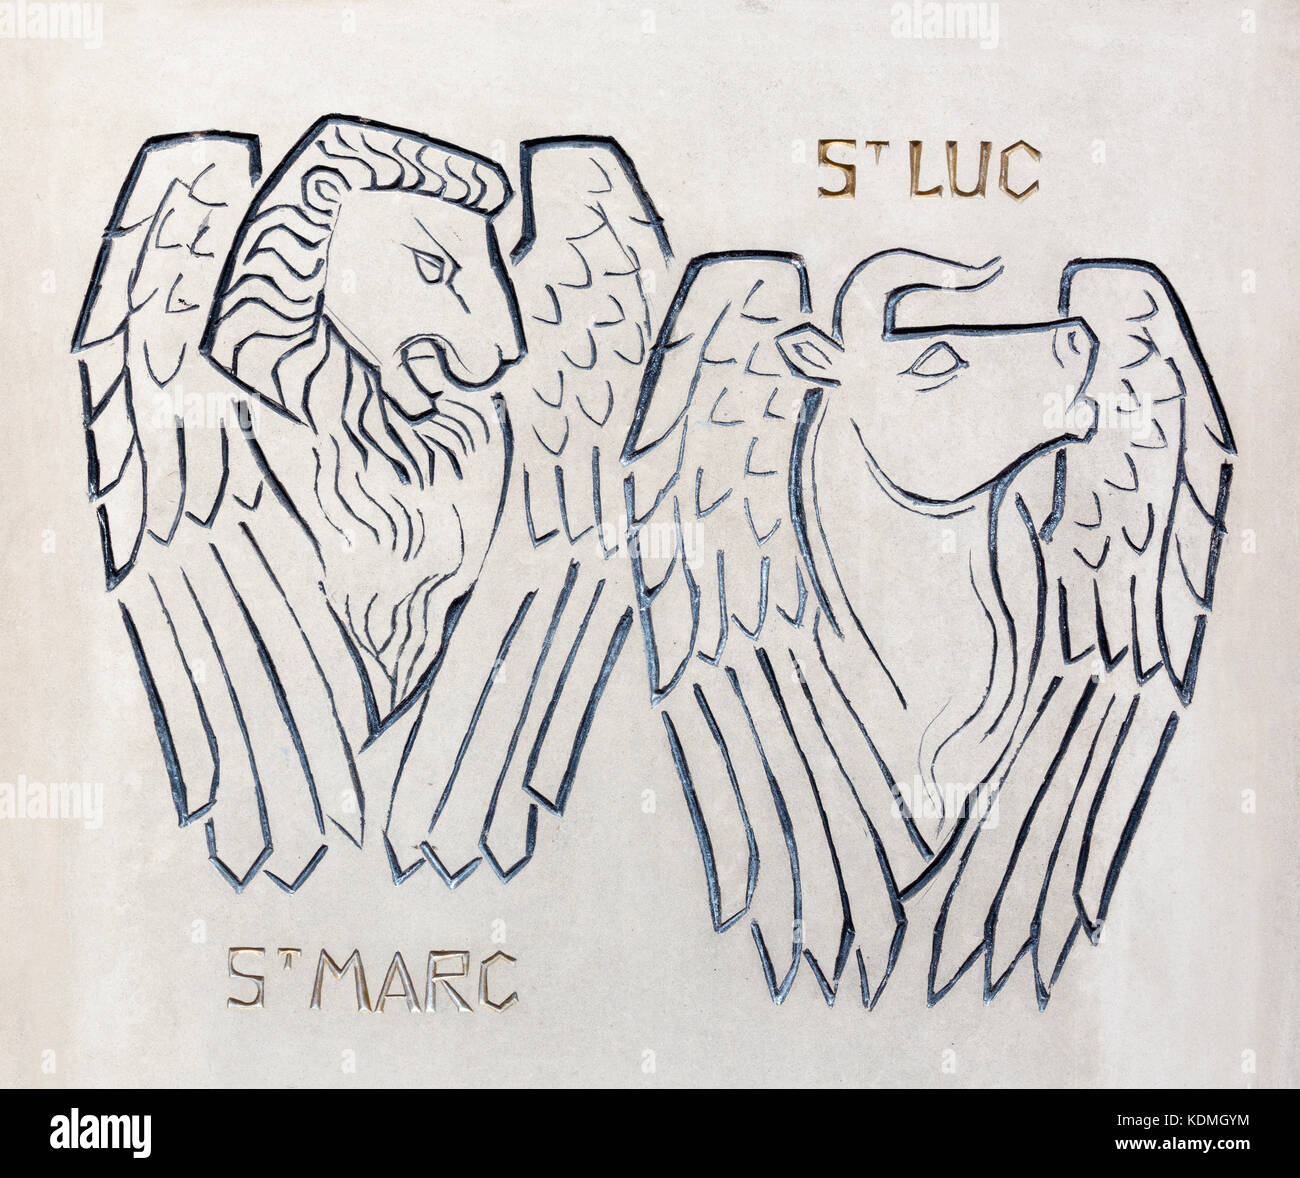 LONDON, GREAT BRITAIN - SEPTEMBER 18, 2017: The detail of modern St. Luke and Mark the Evangelists symbols carved - Stock Image